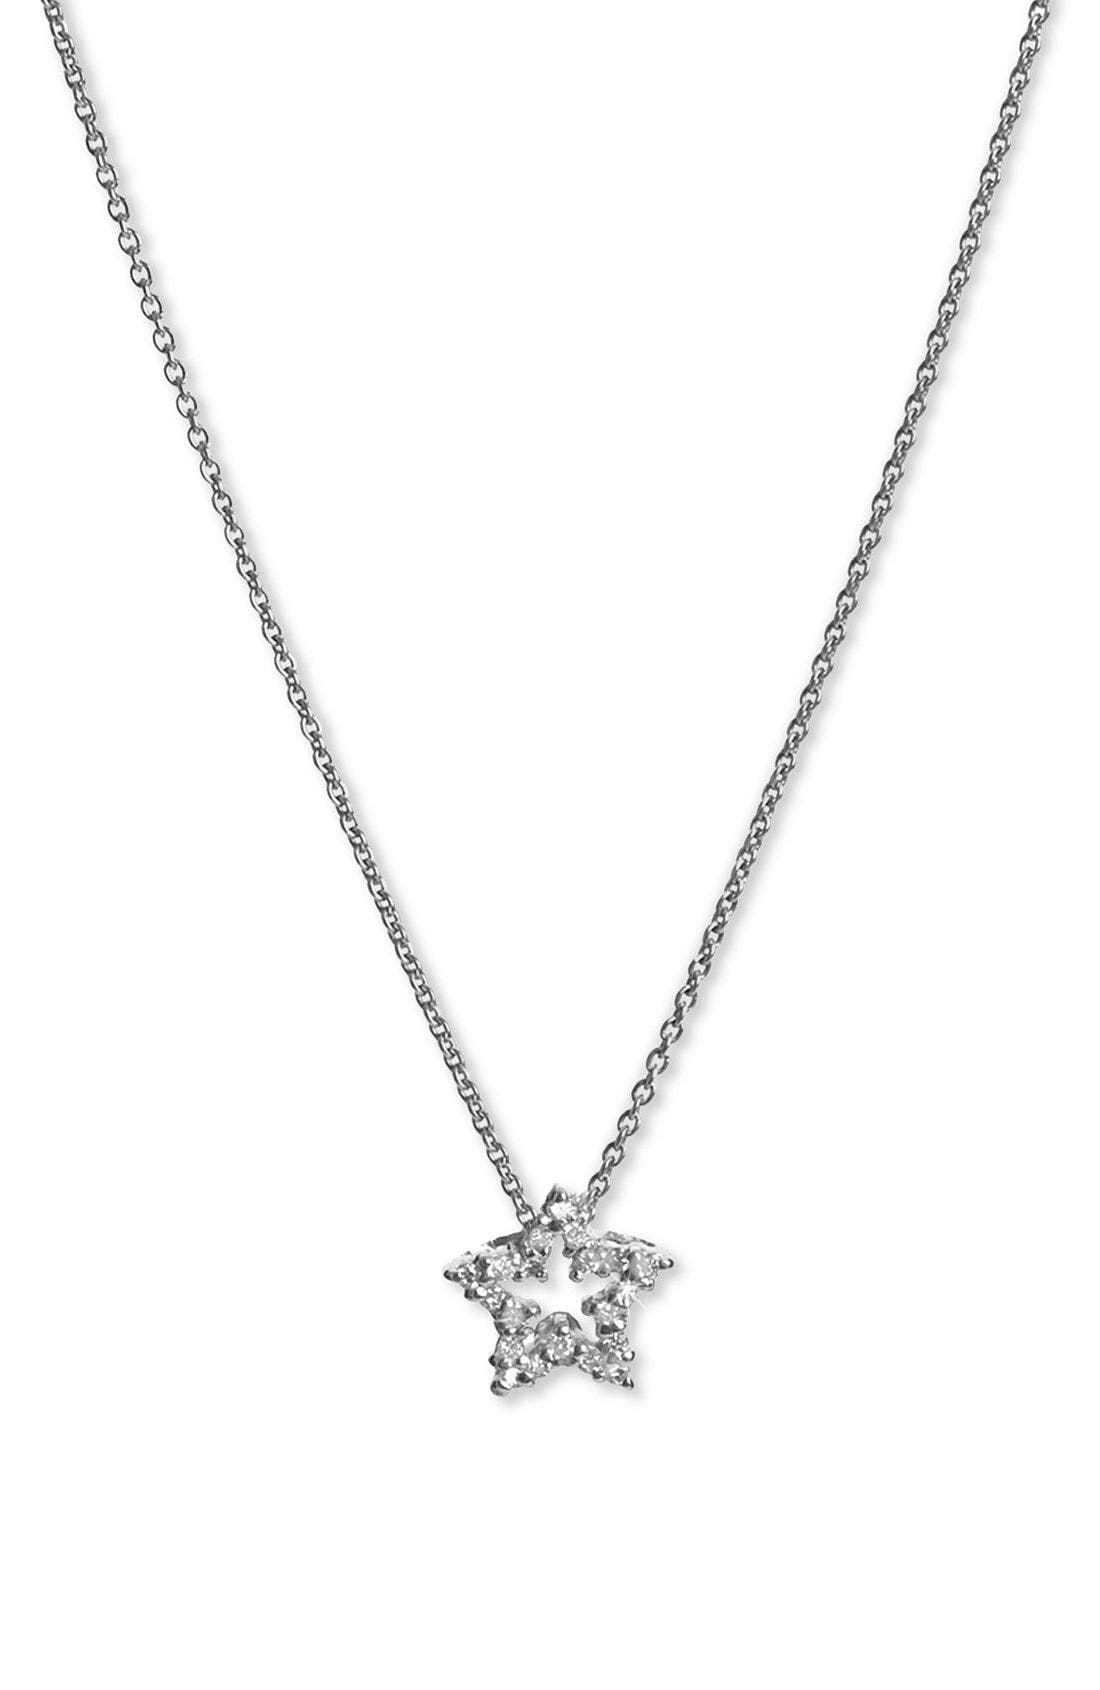 Alternate Image 1 Selected - Roberto Coin Tiny Treasures Star Pendant Necklace